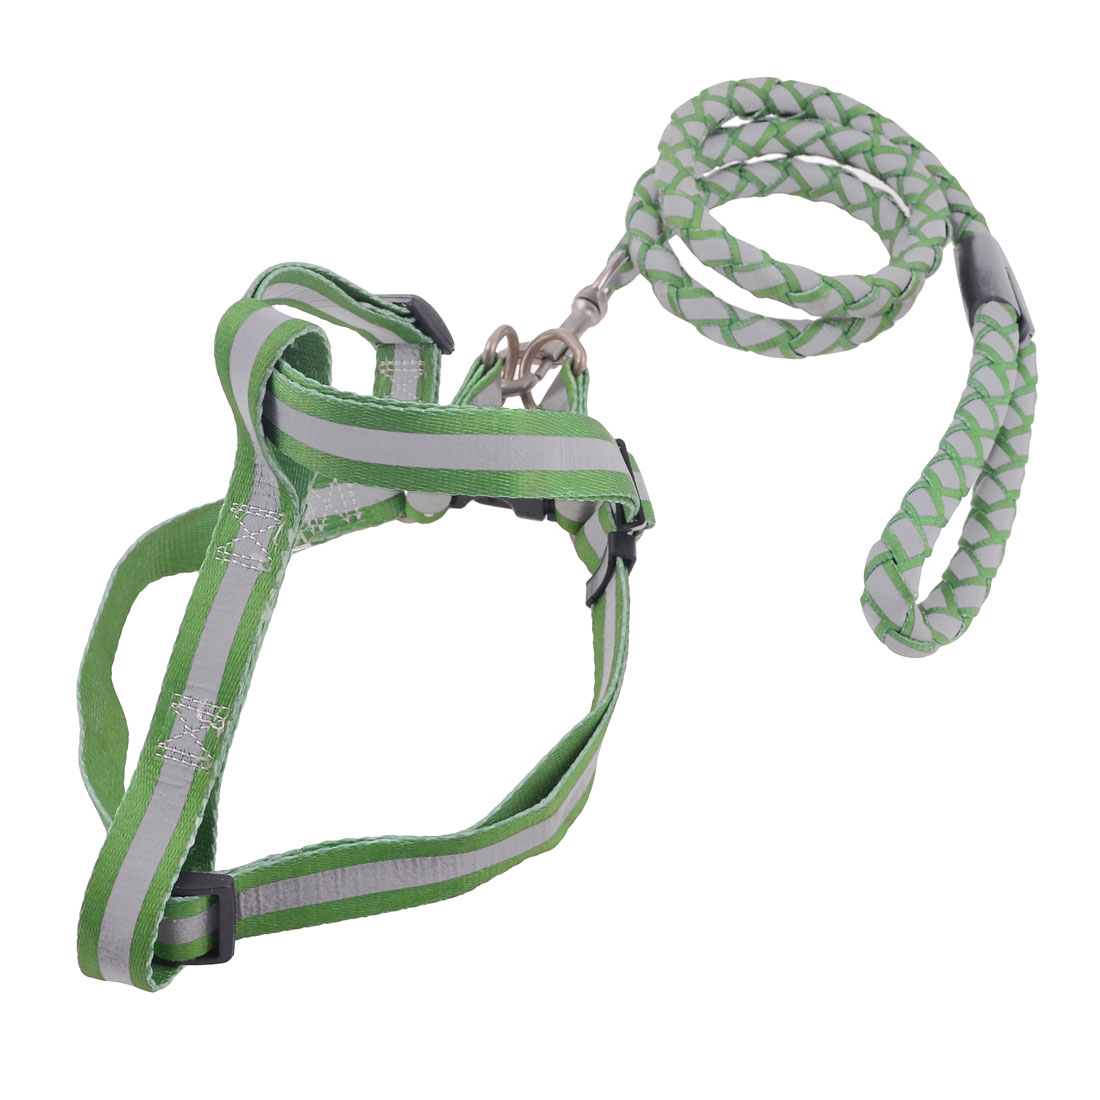 Green Gray Nylon Traction Rope Adjustable Reflective Dog Harness Leash Lead